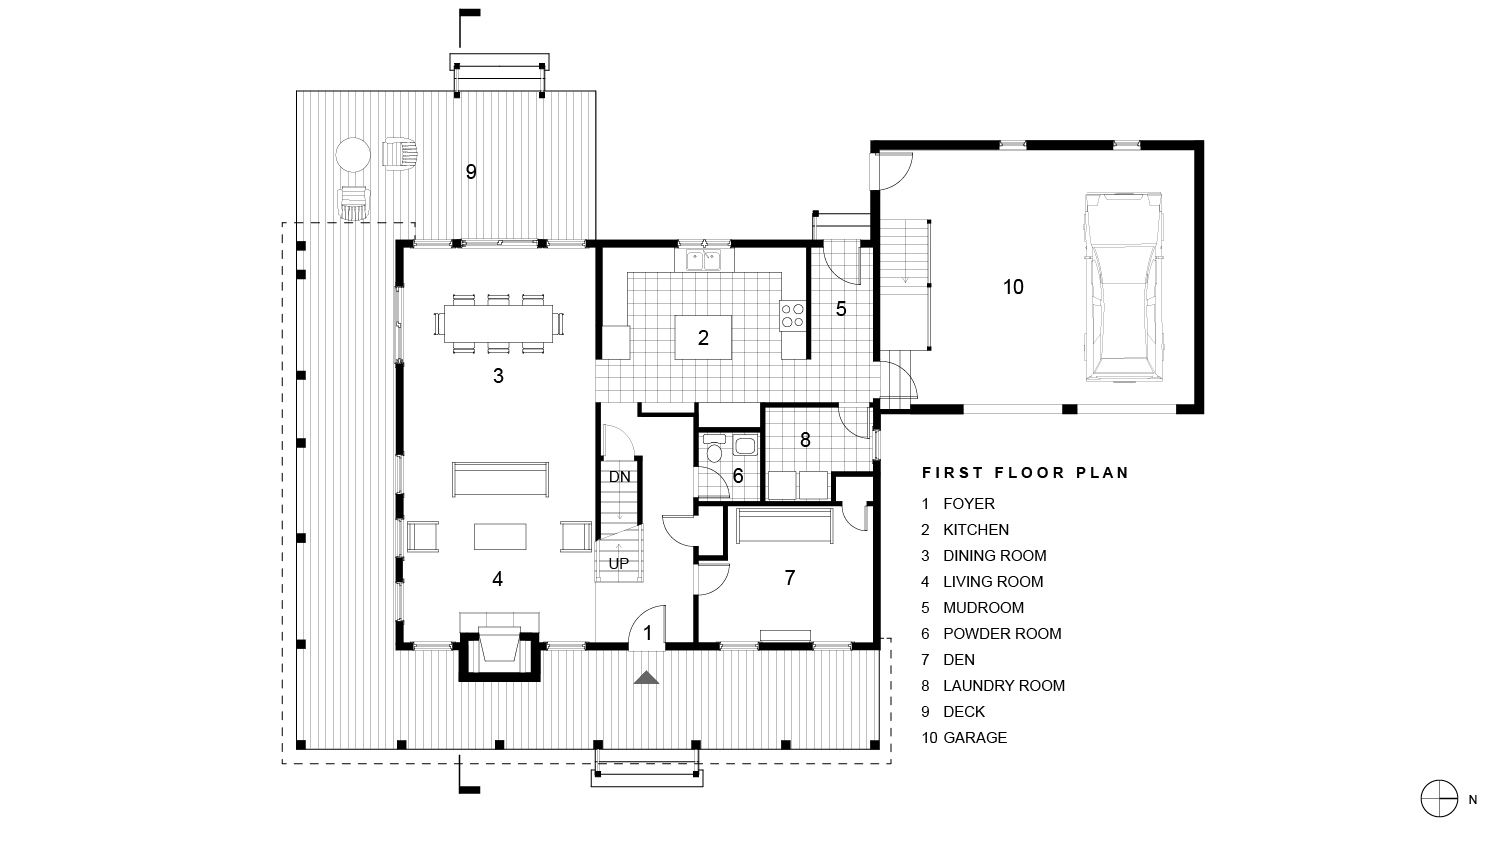 Syracuse Residence First Floor Plan